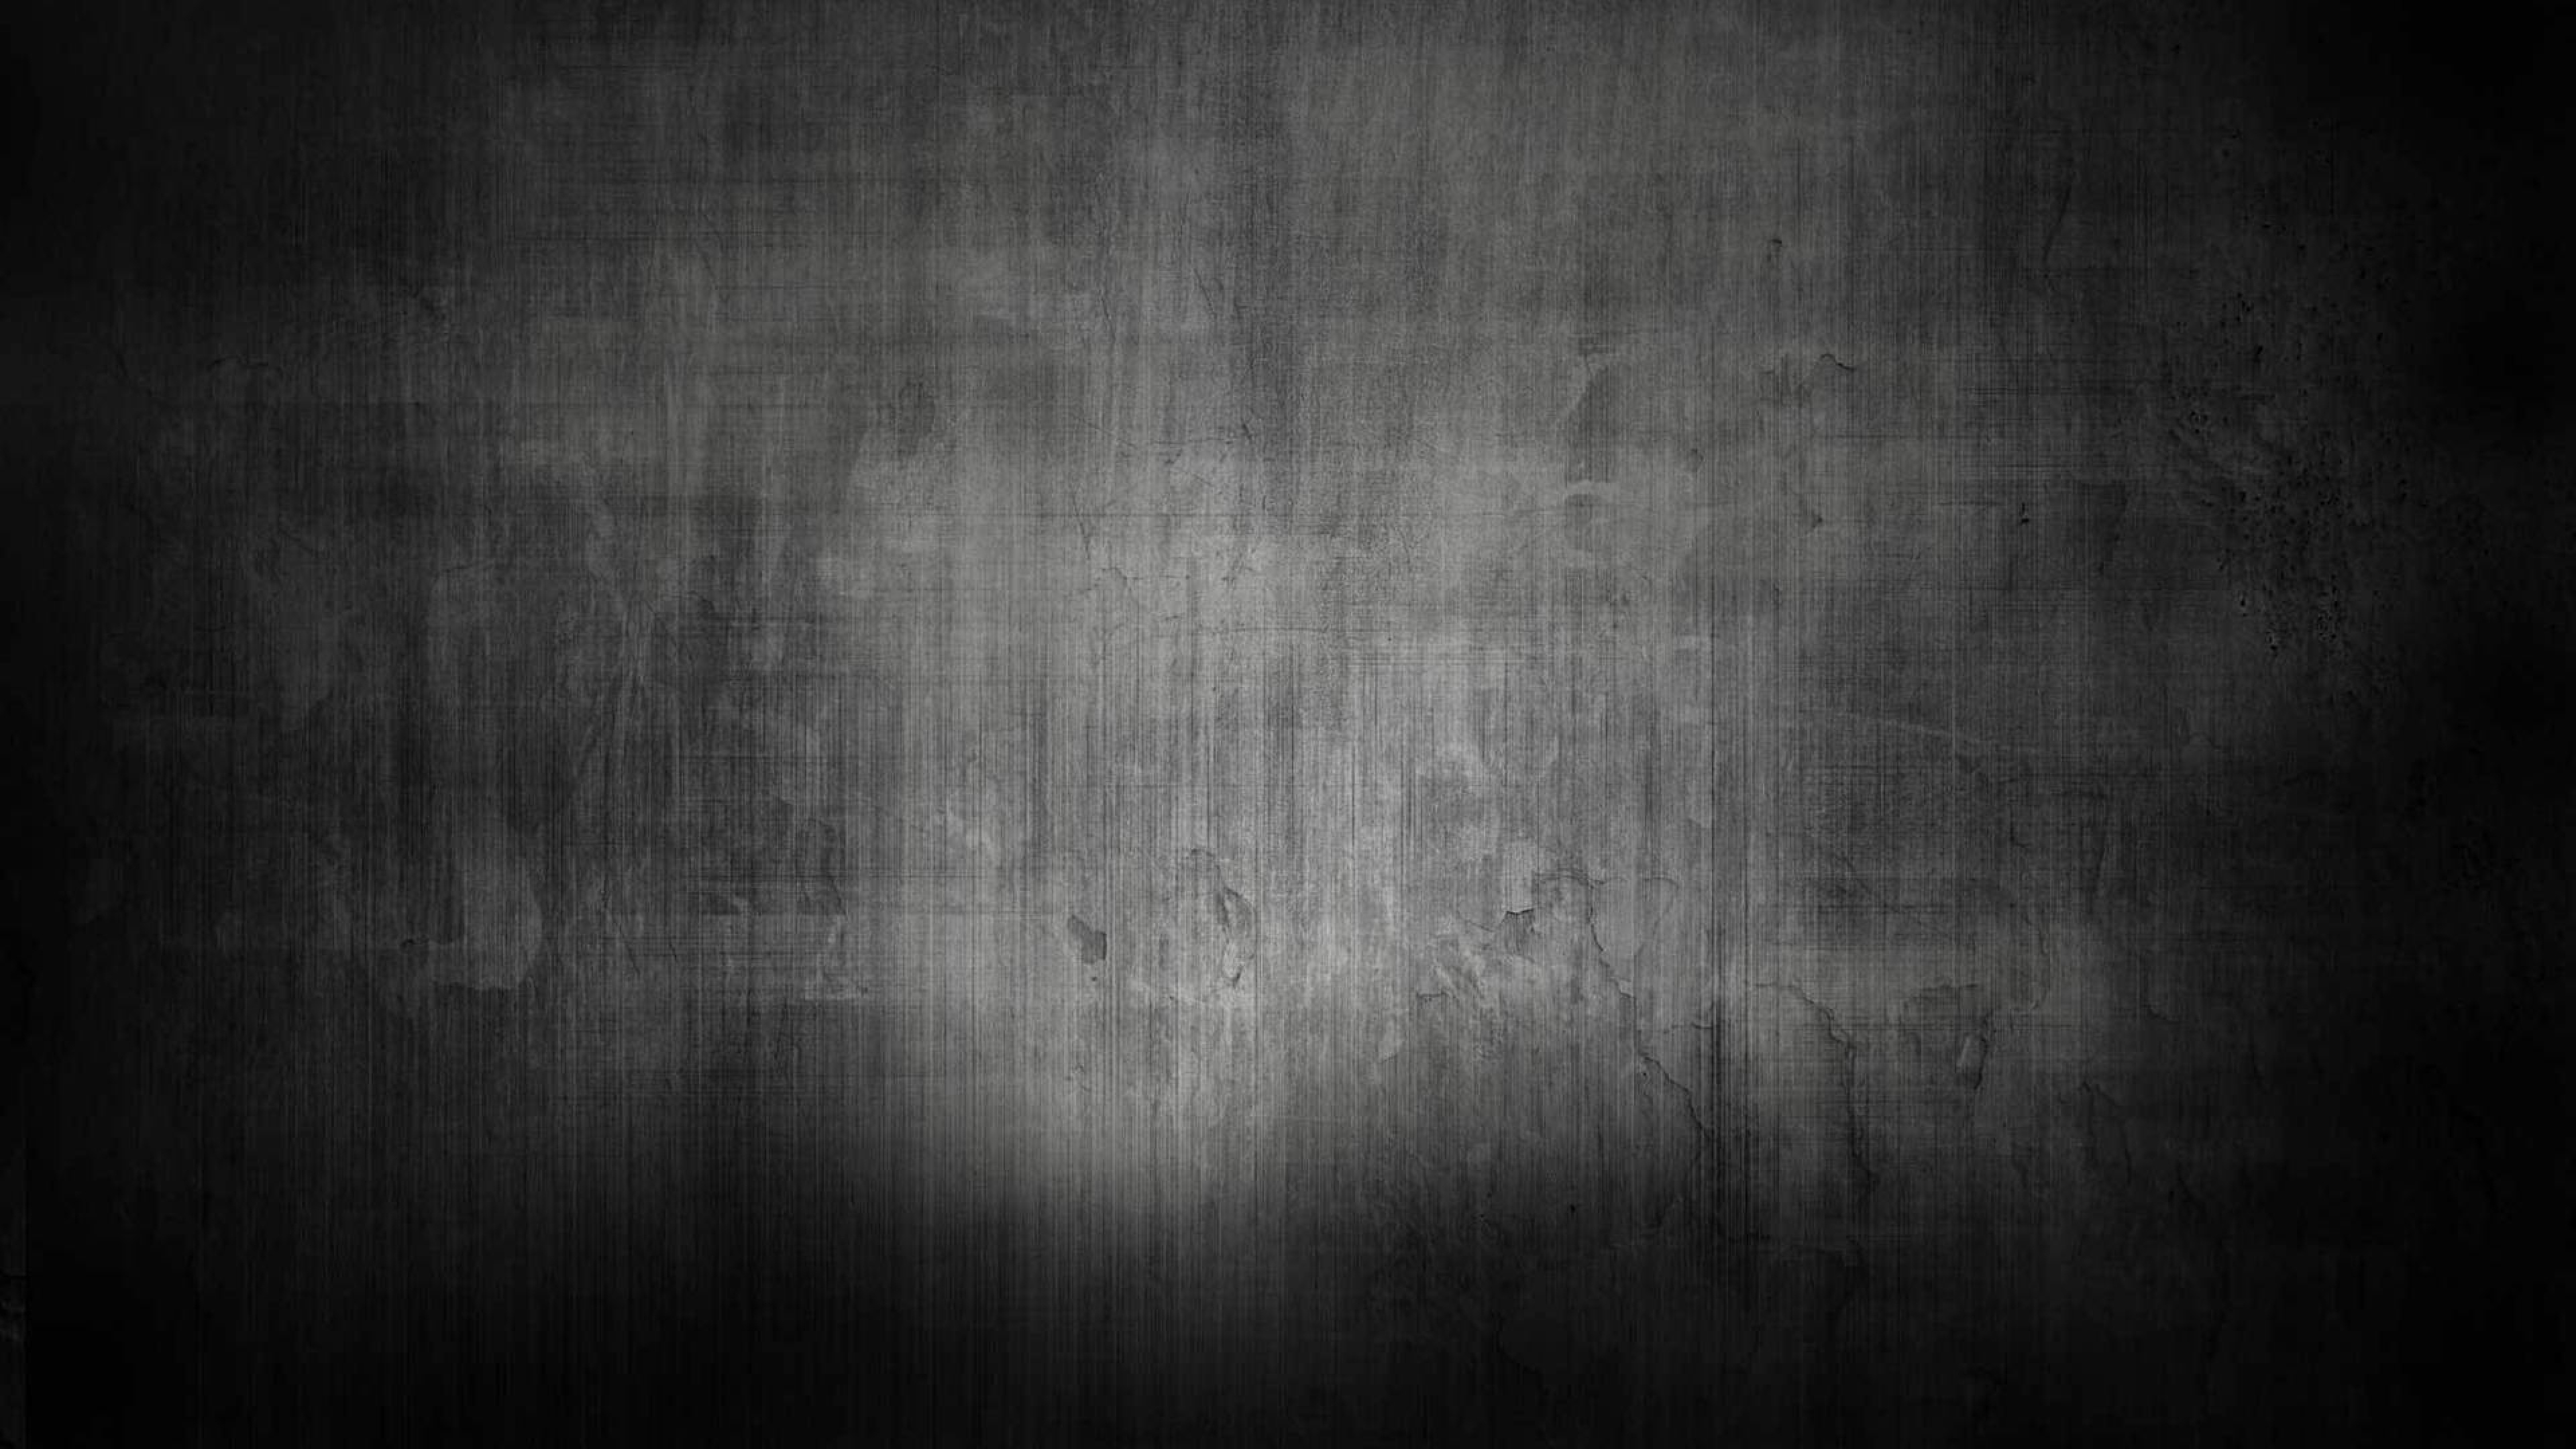 HD Background White Spot Black Texture Wallpaper | WallpapersByte